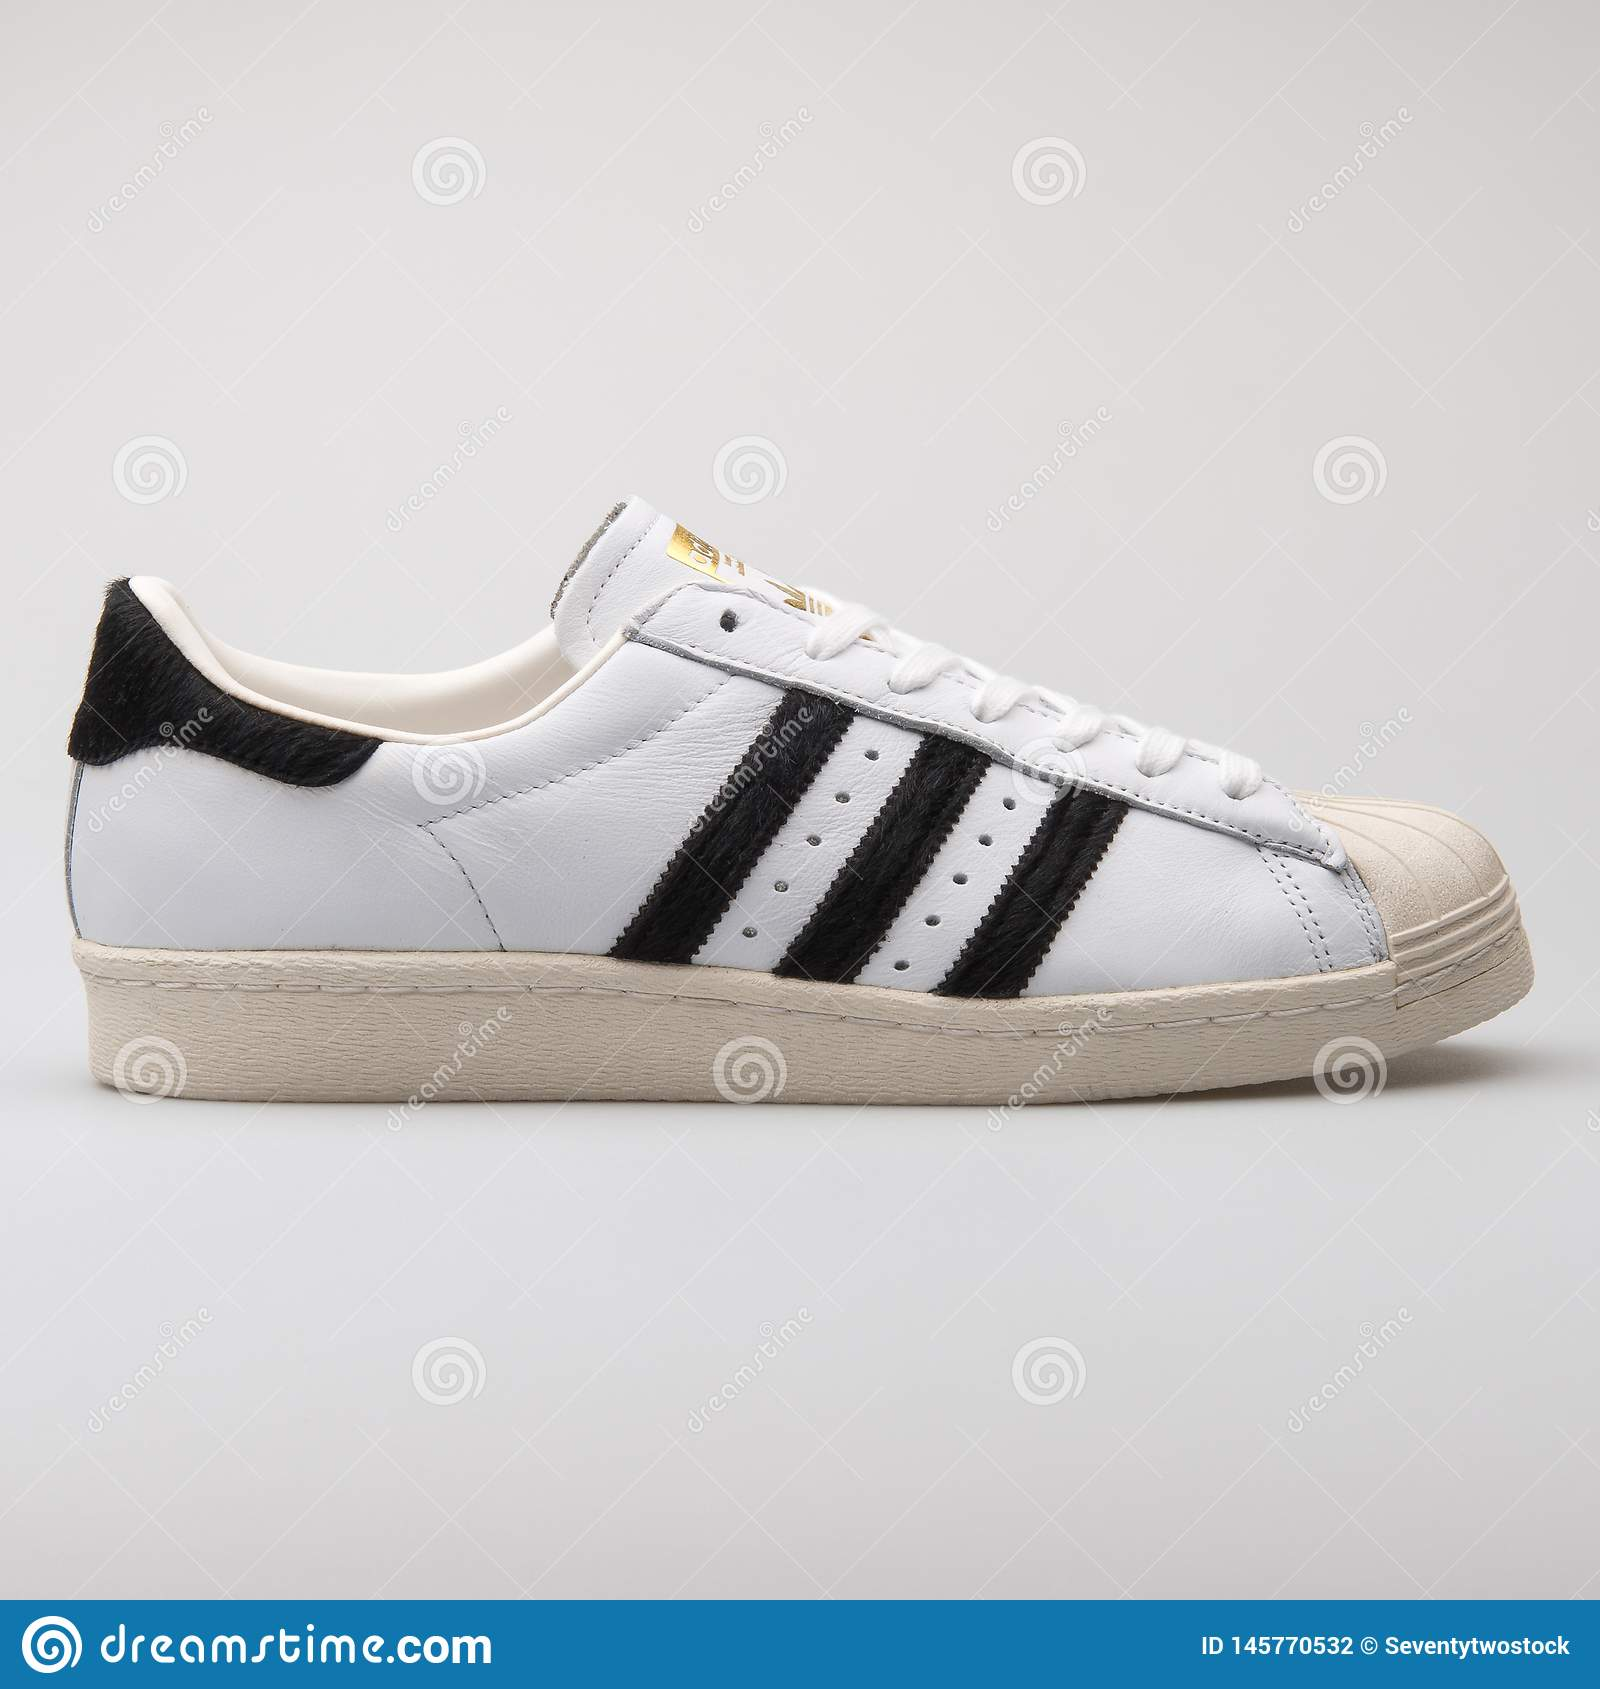 8982fd07 Adidas Superstar 80s White Sneaker Editorial Photography - Image of ...